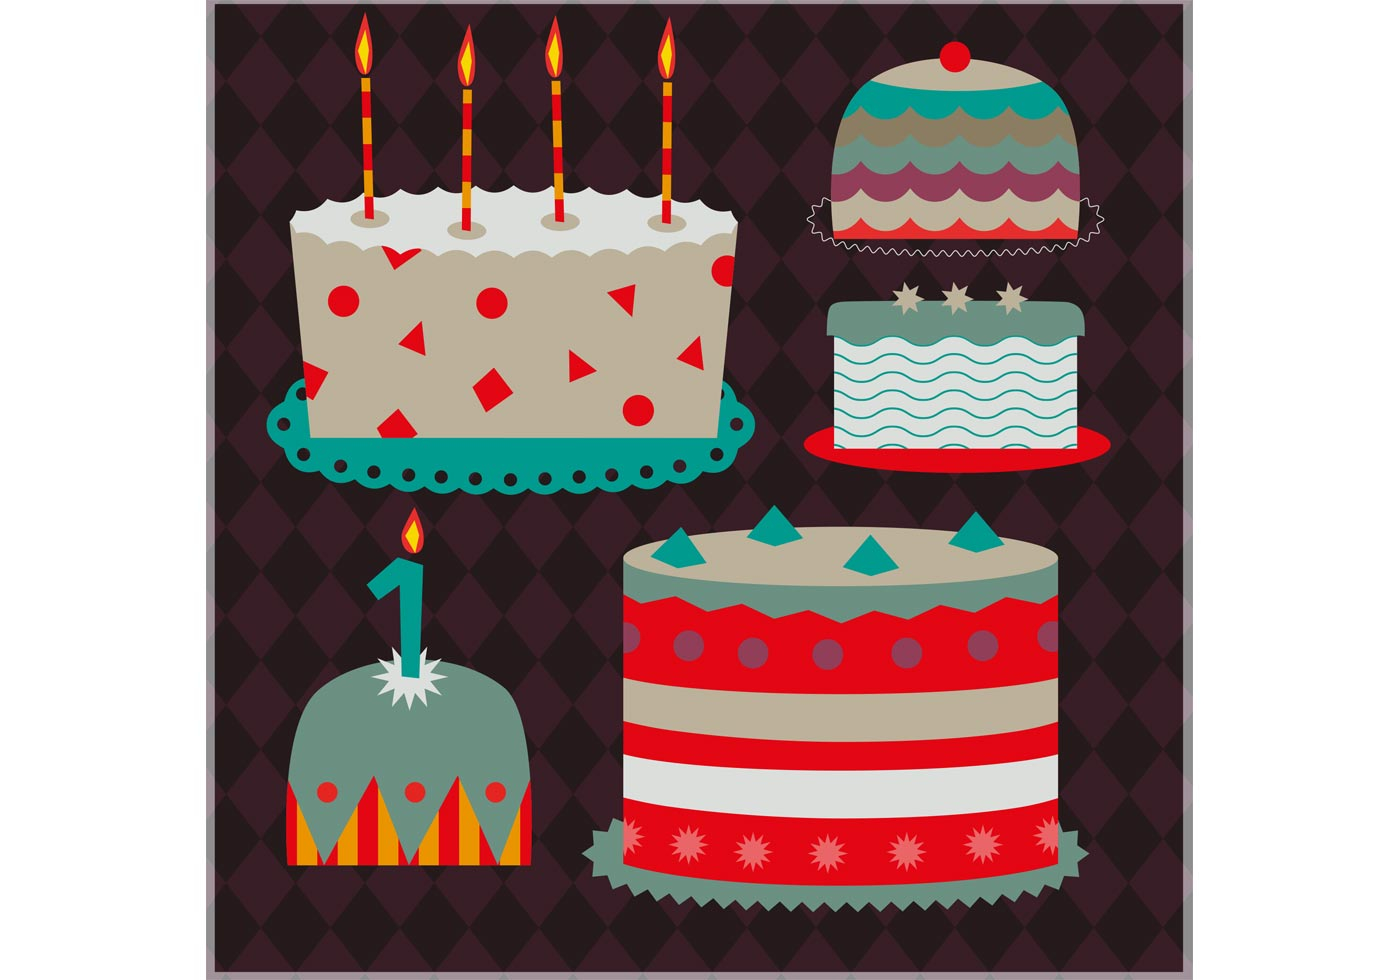 Cake decoration free vector art 18804 free downloads for Art cake decoration